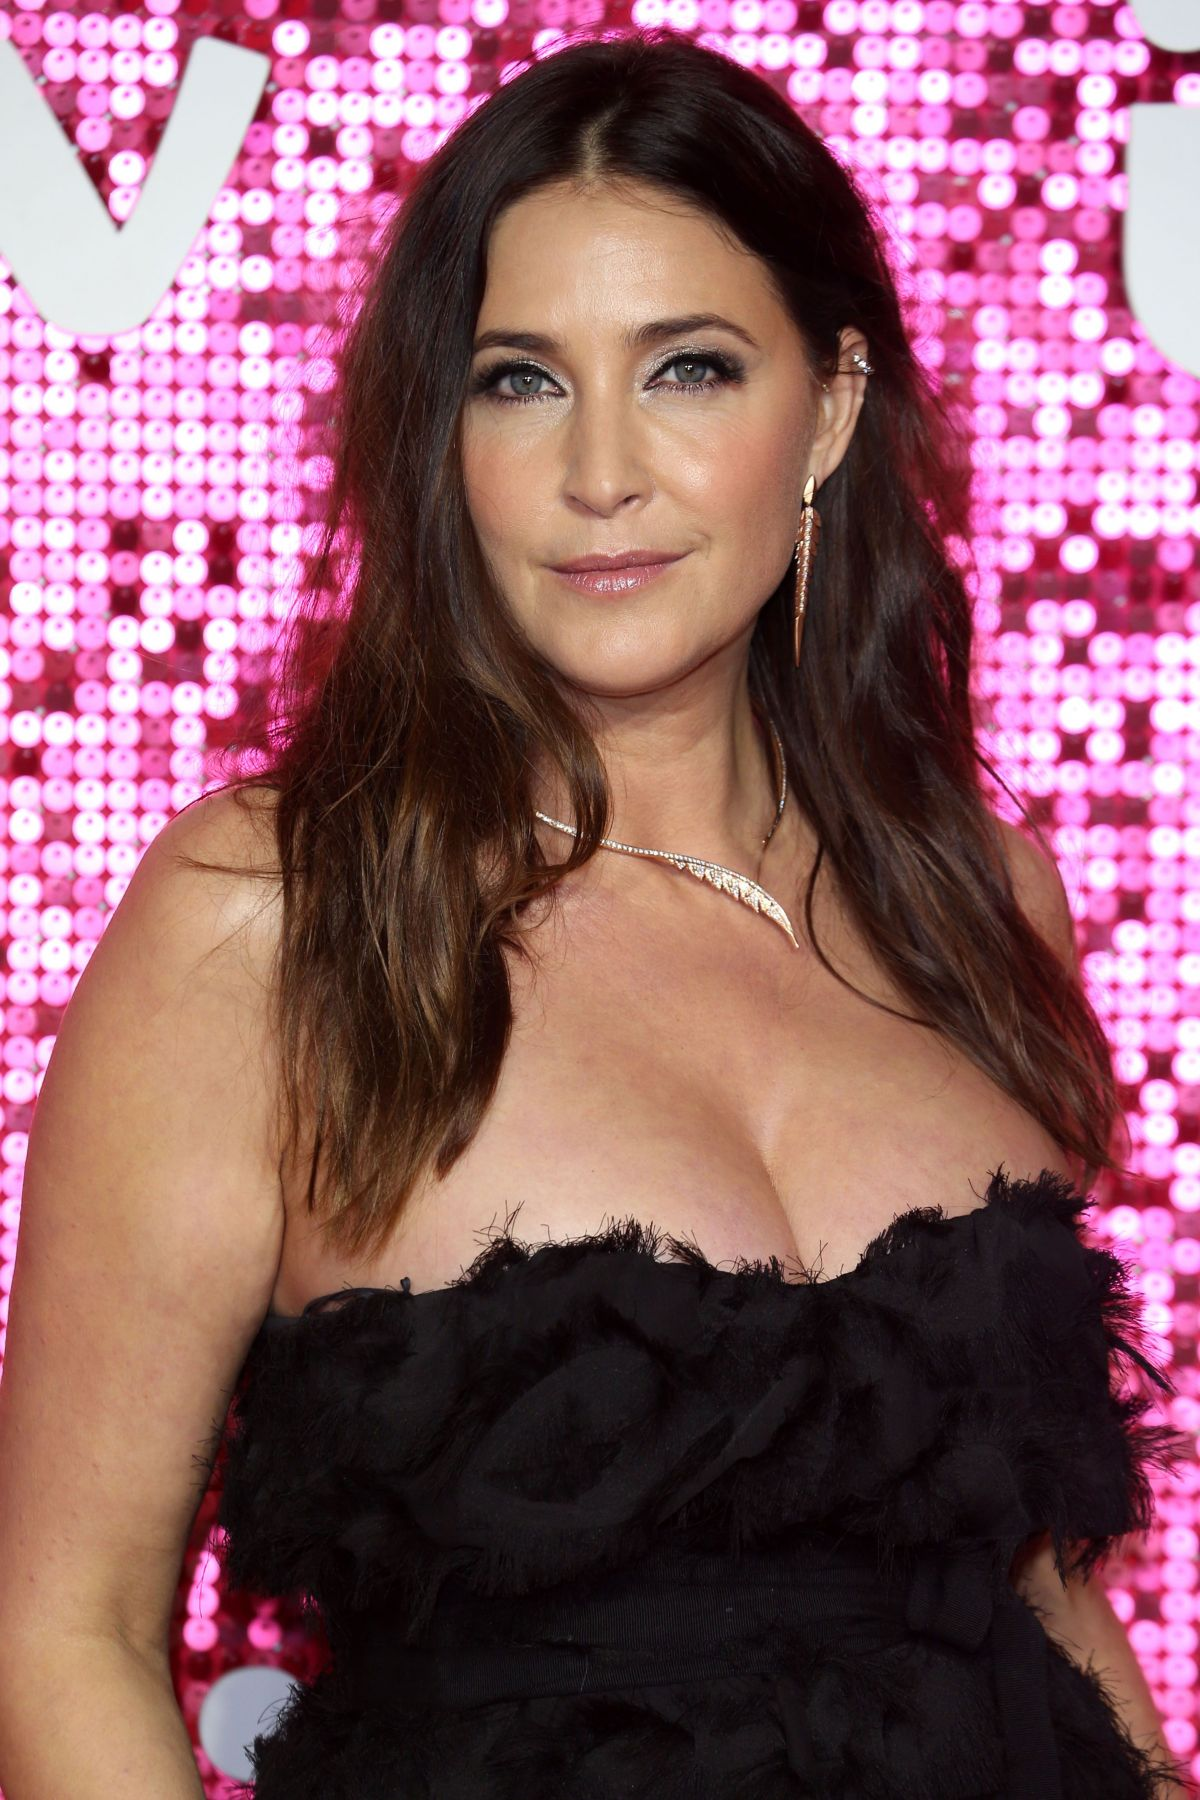 Lisa Snowdon nudes (33 fotos), hacked Sideboobs, Instagram, bra 2020